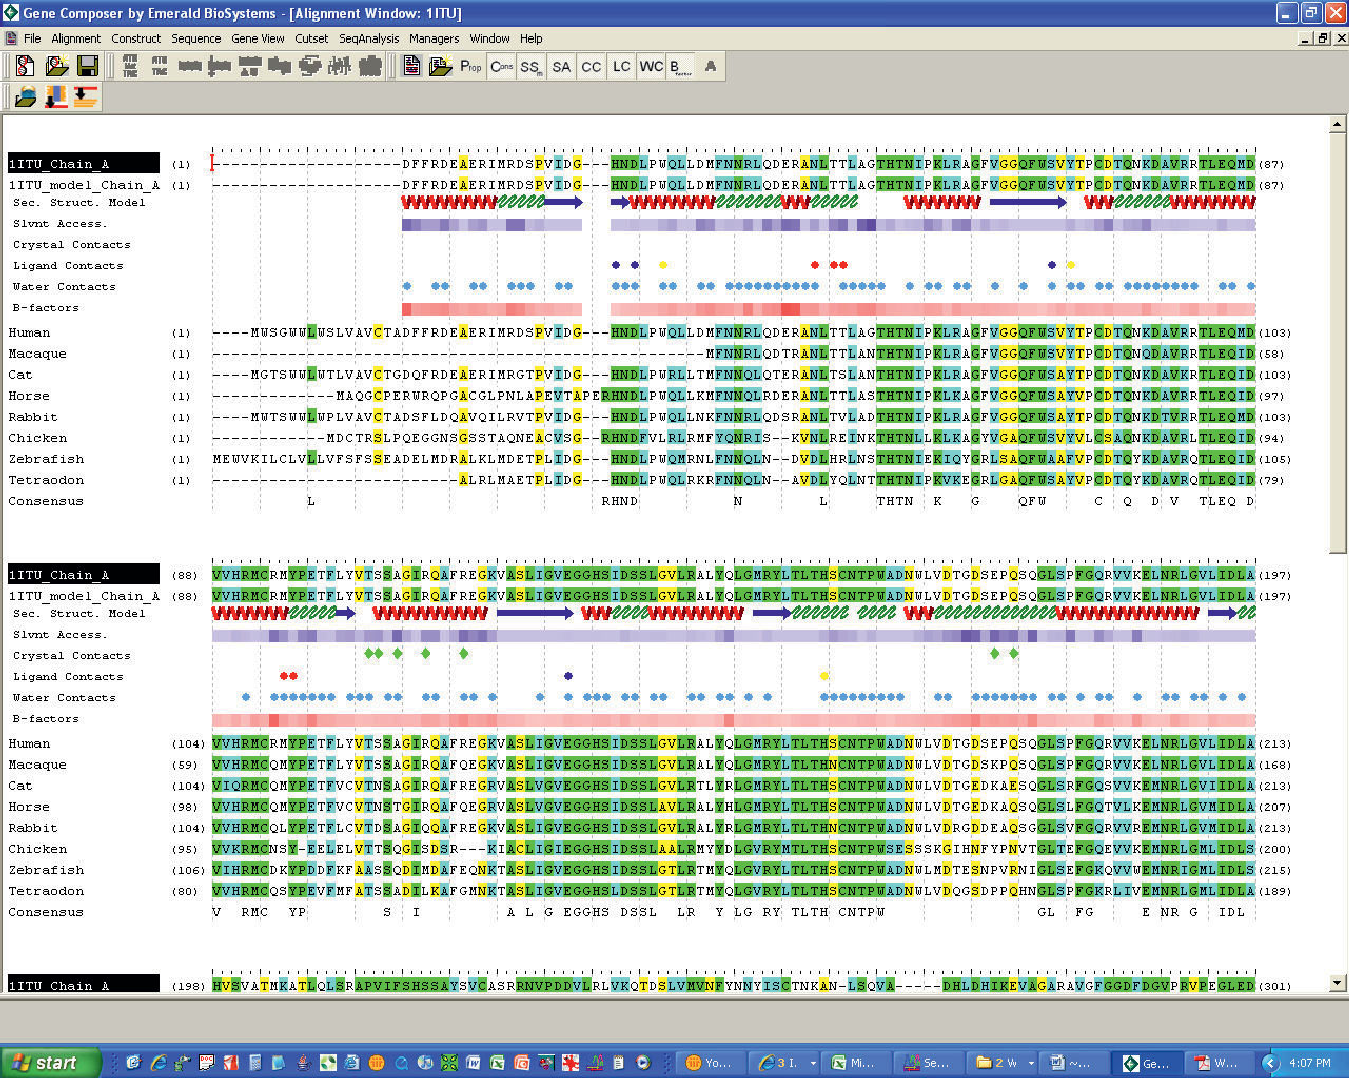 Figure 1 from Gene Composer: database software for protein